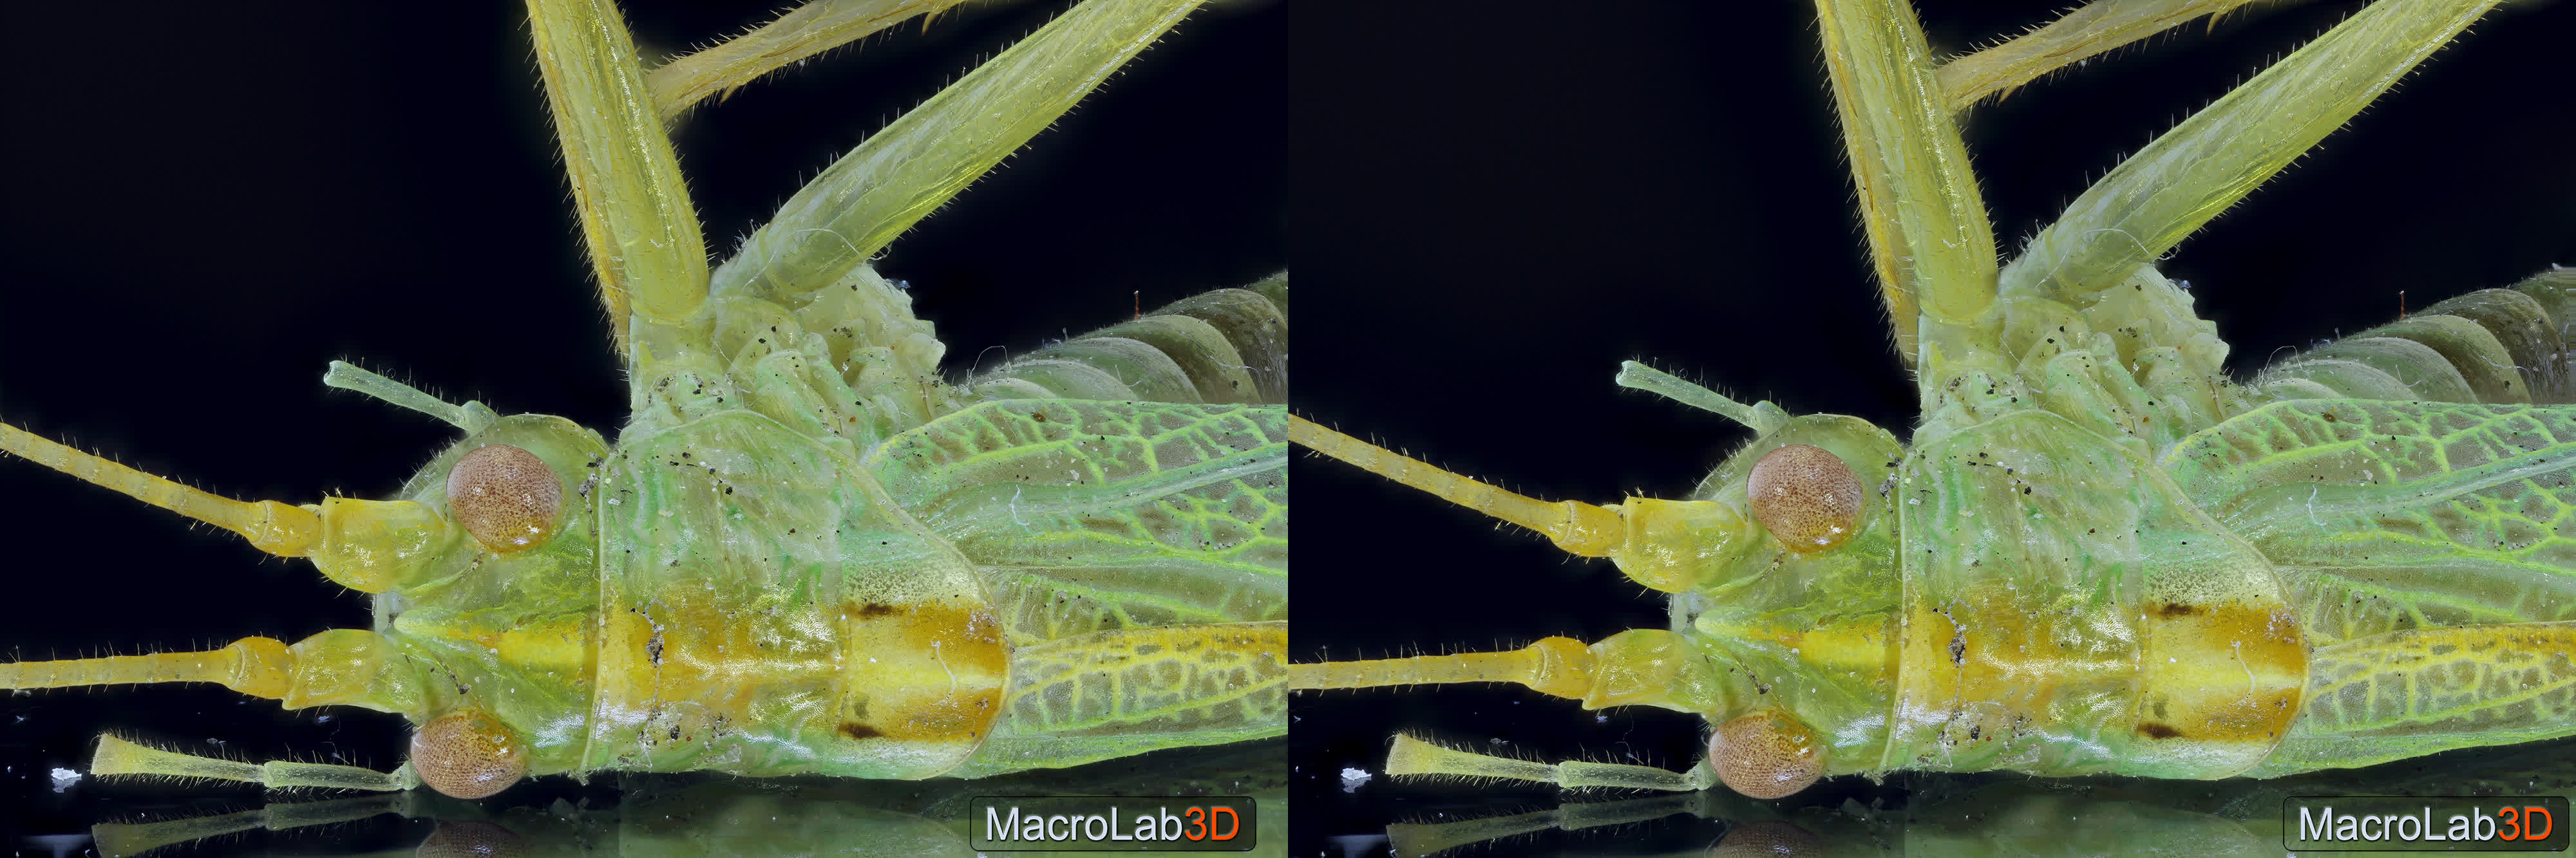 3D, Grasshopper, MacroLab3D, Decomposed Grasshopper under UV, Crossview 3D GIFs